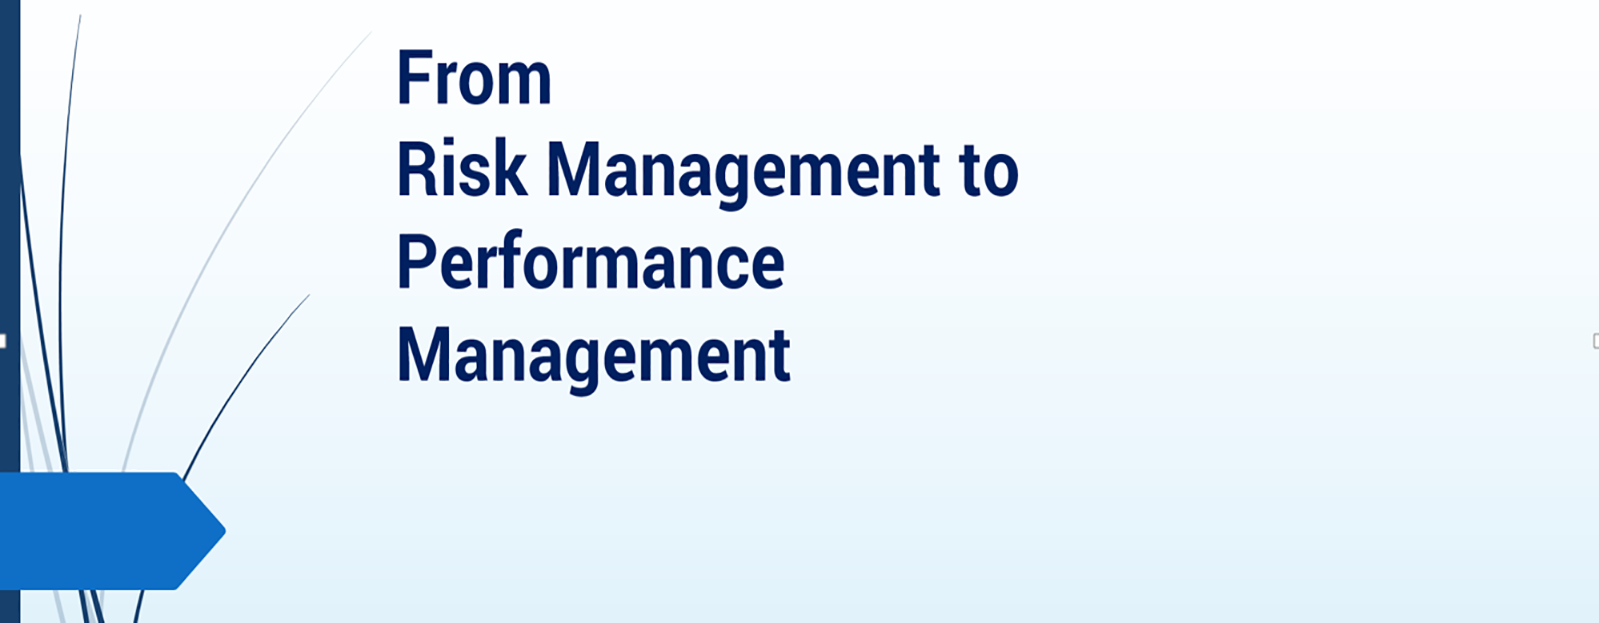 From_Risk_Management_to_Performance_Management_2.png